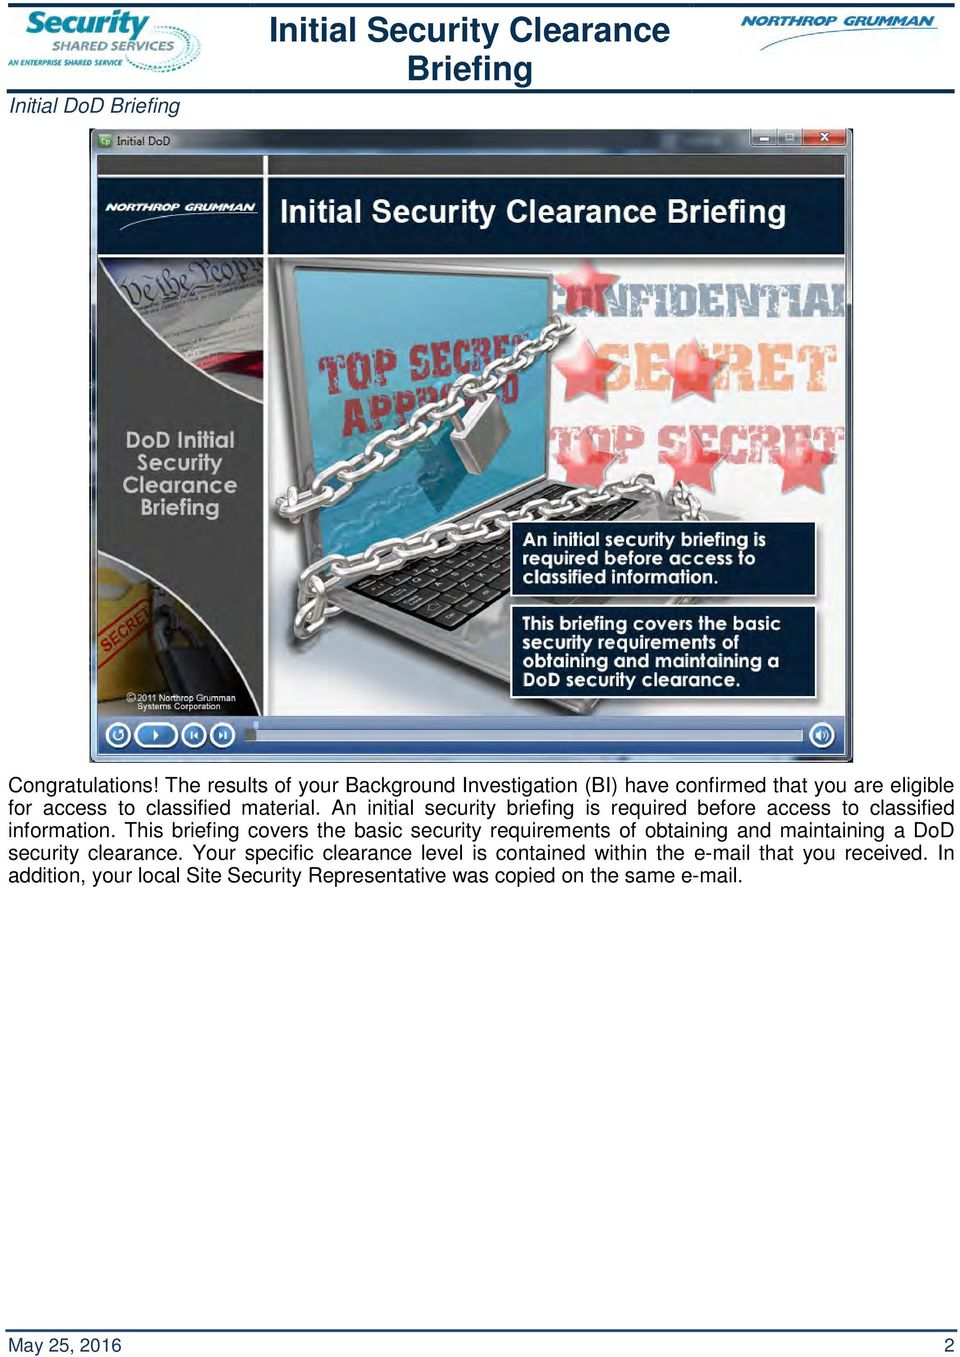 how to get dod security clearance